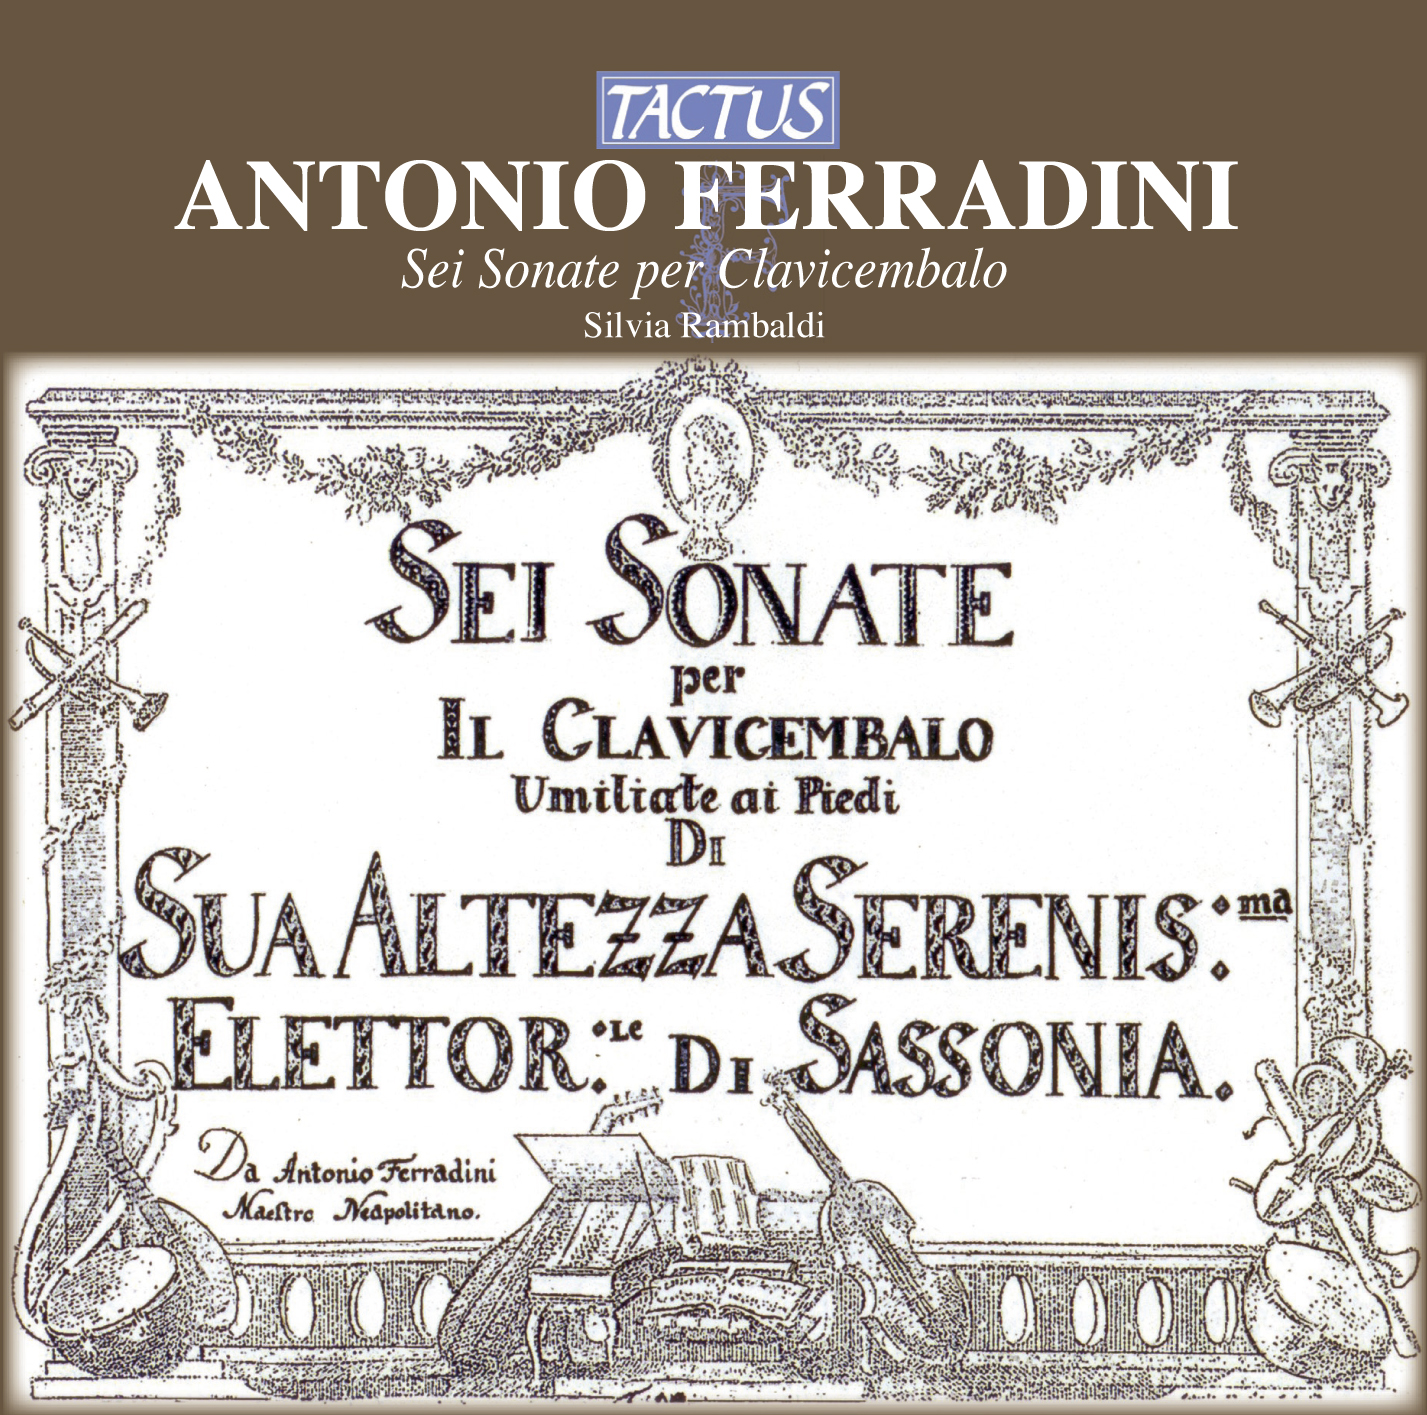 Keyboard Sonata No. 1, Keyboard Sonata No. 1: IV. La clochette, Allegro di molto